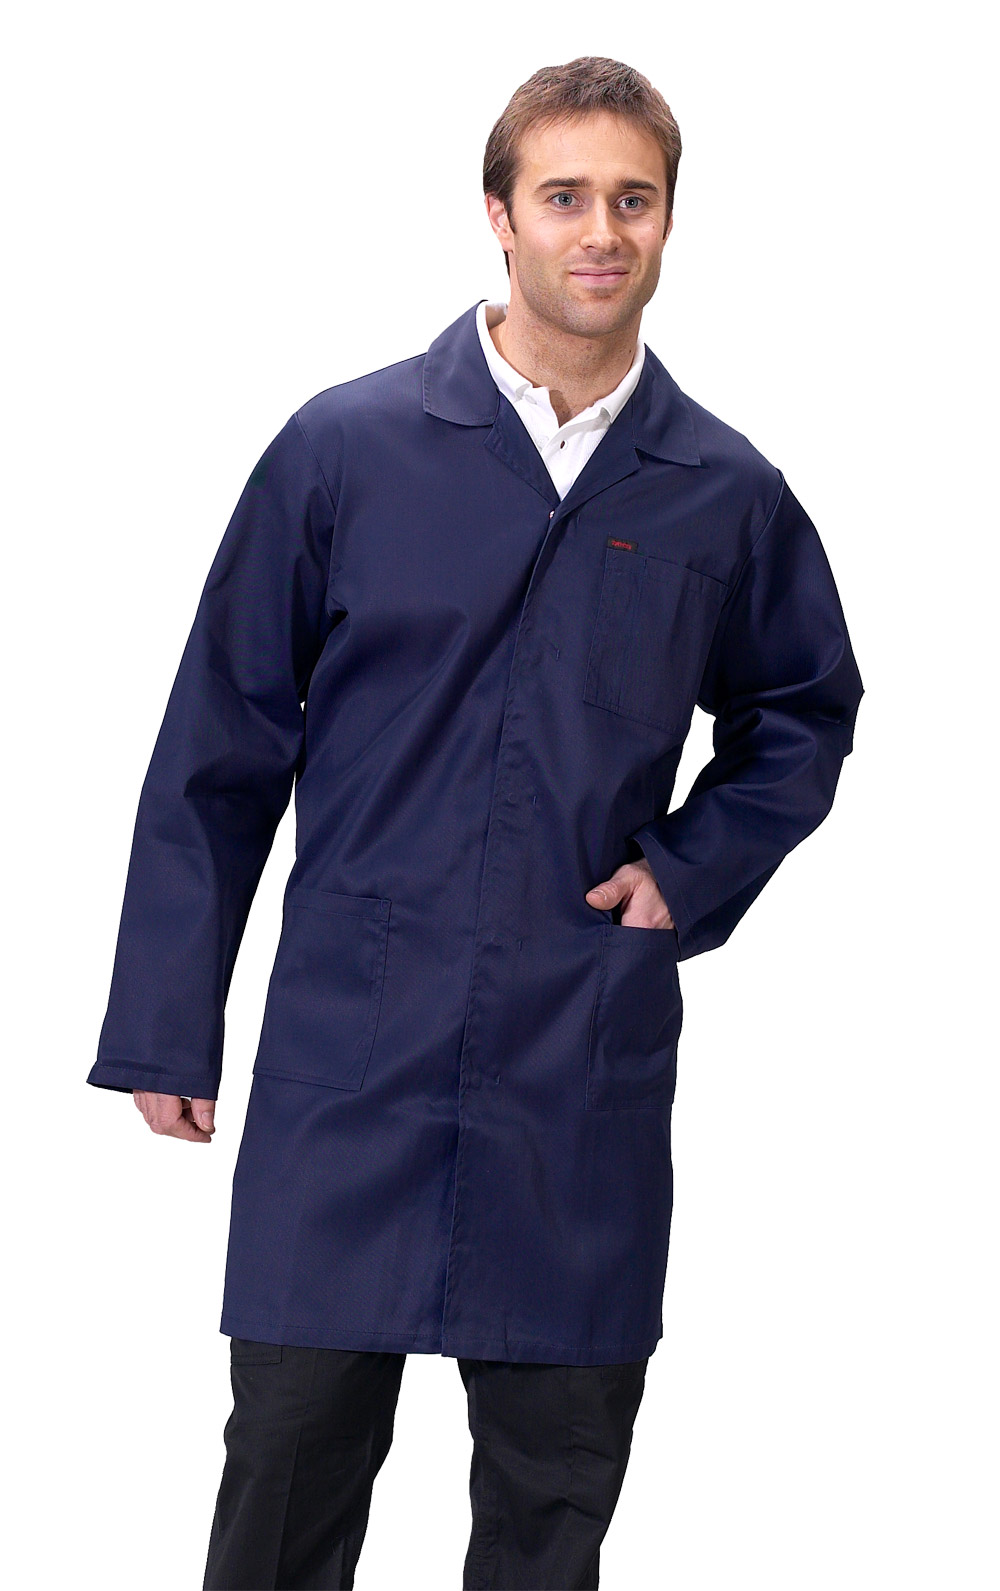 Click Warehouse Jacket Lab Coat White Green Navy Or